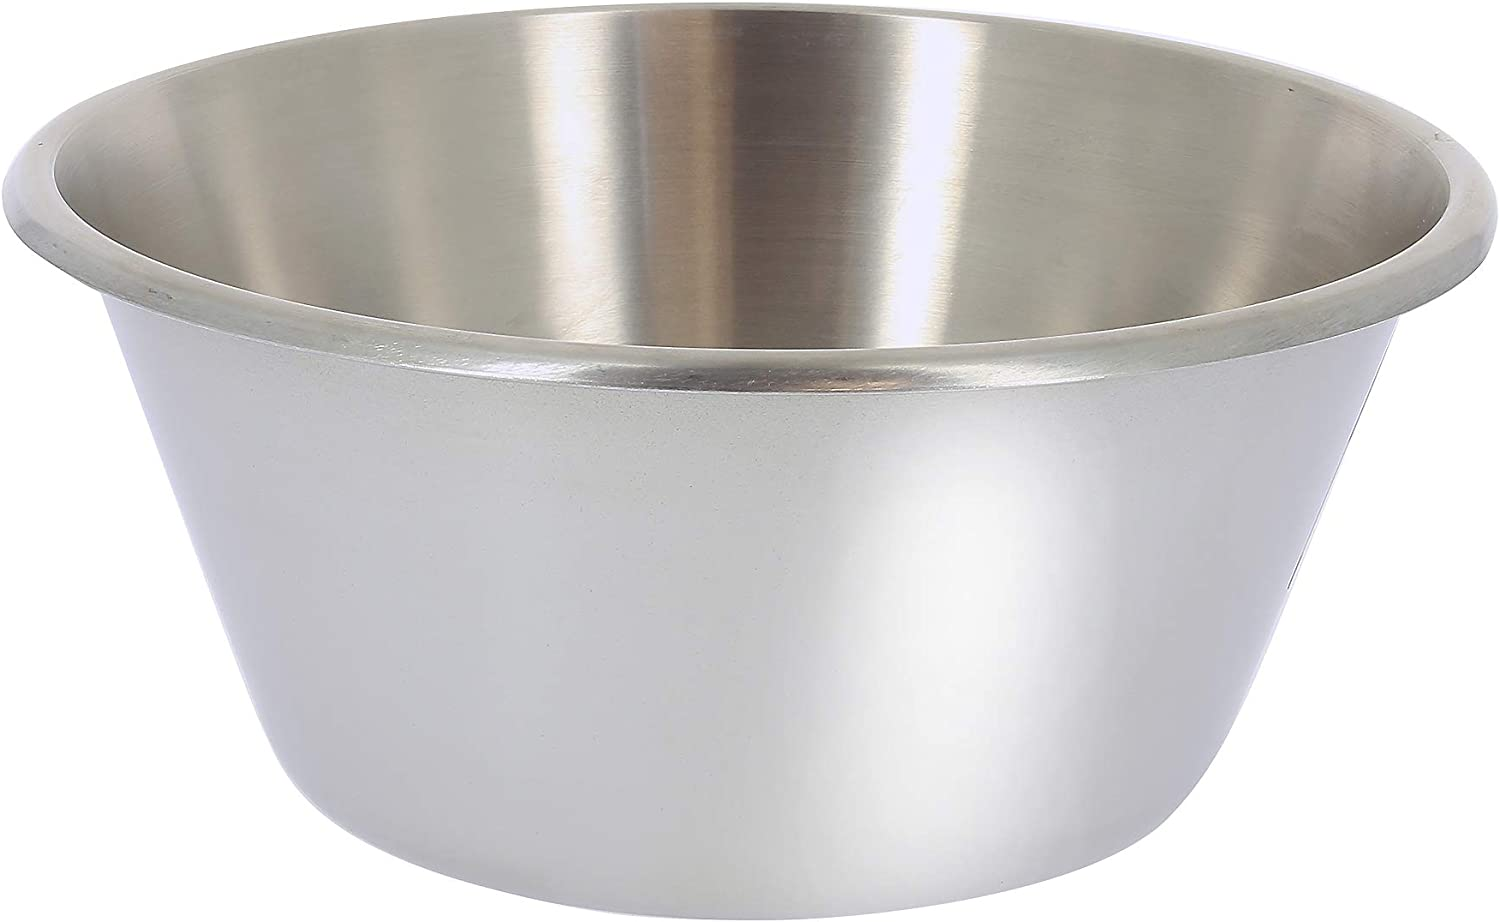 de Buyer - Stainless Steel Factory outlet Mixing Kitche Flat with Bottom Bowl Ranking TOP11